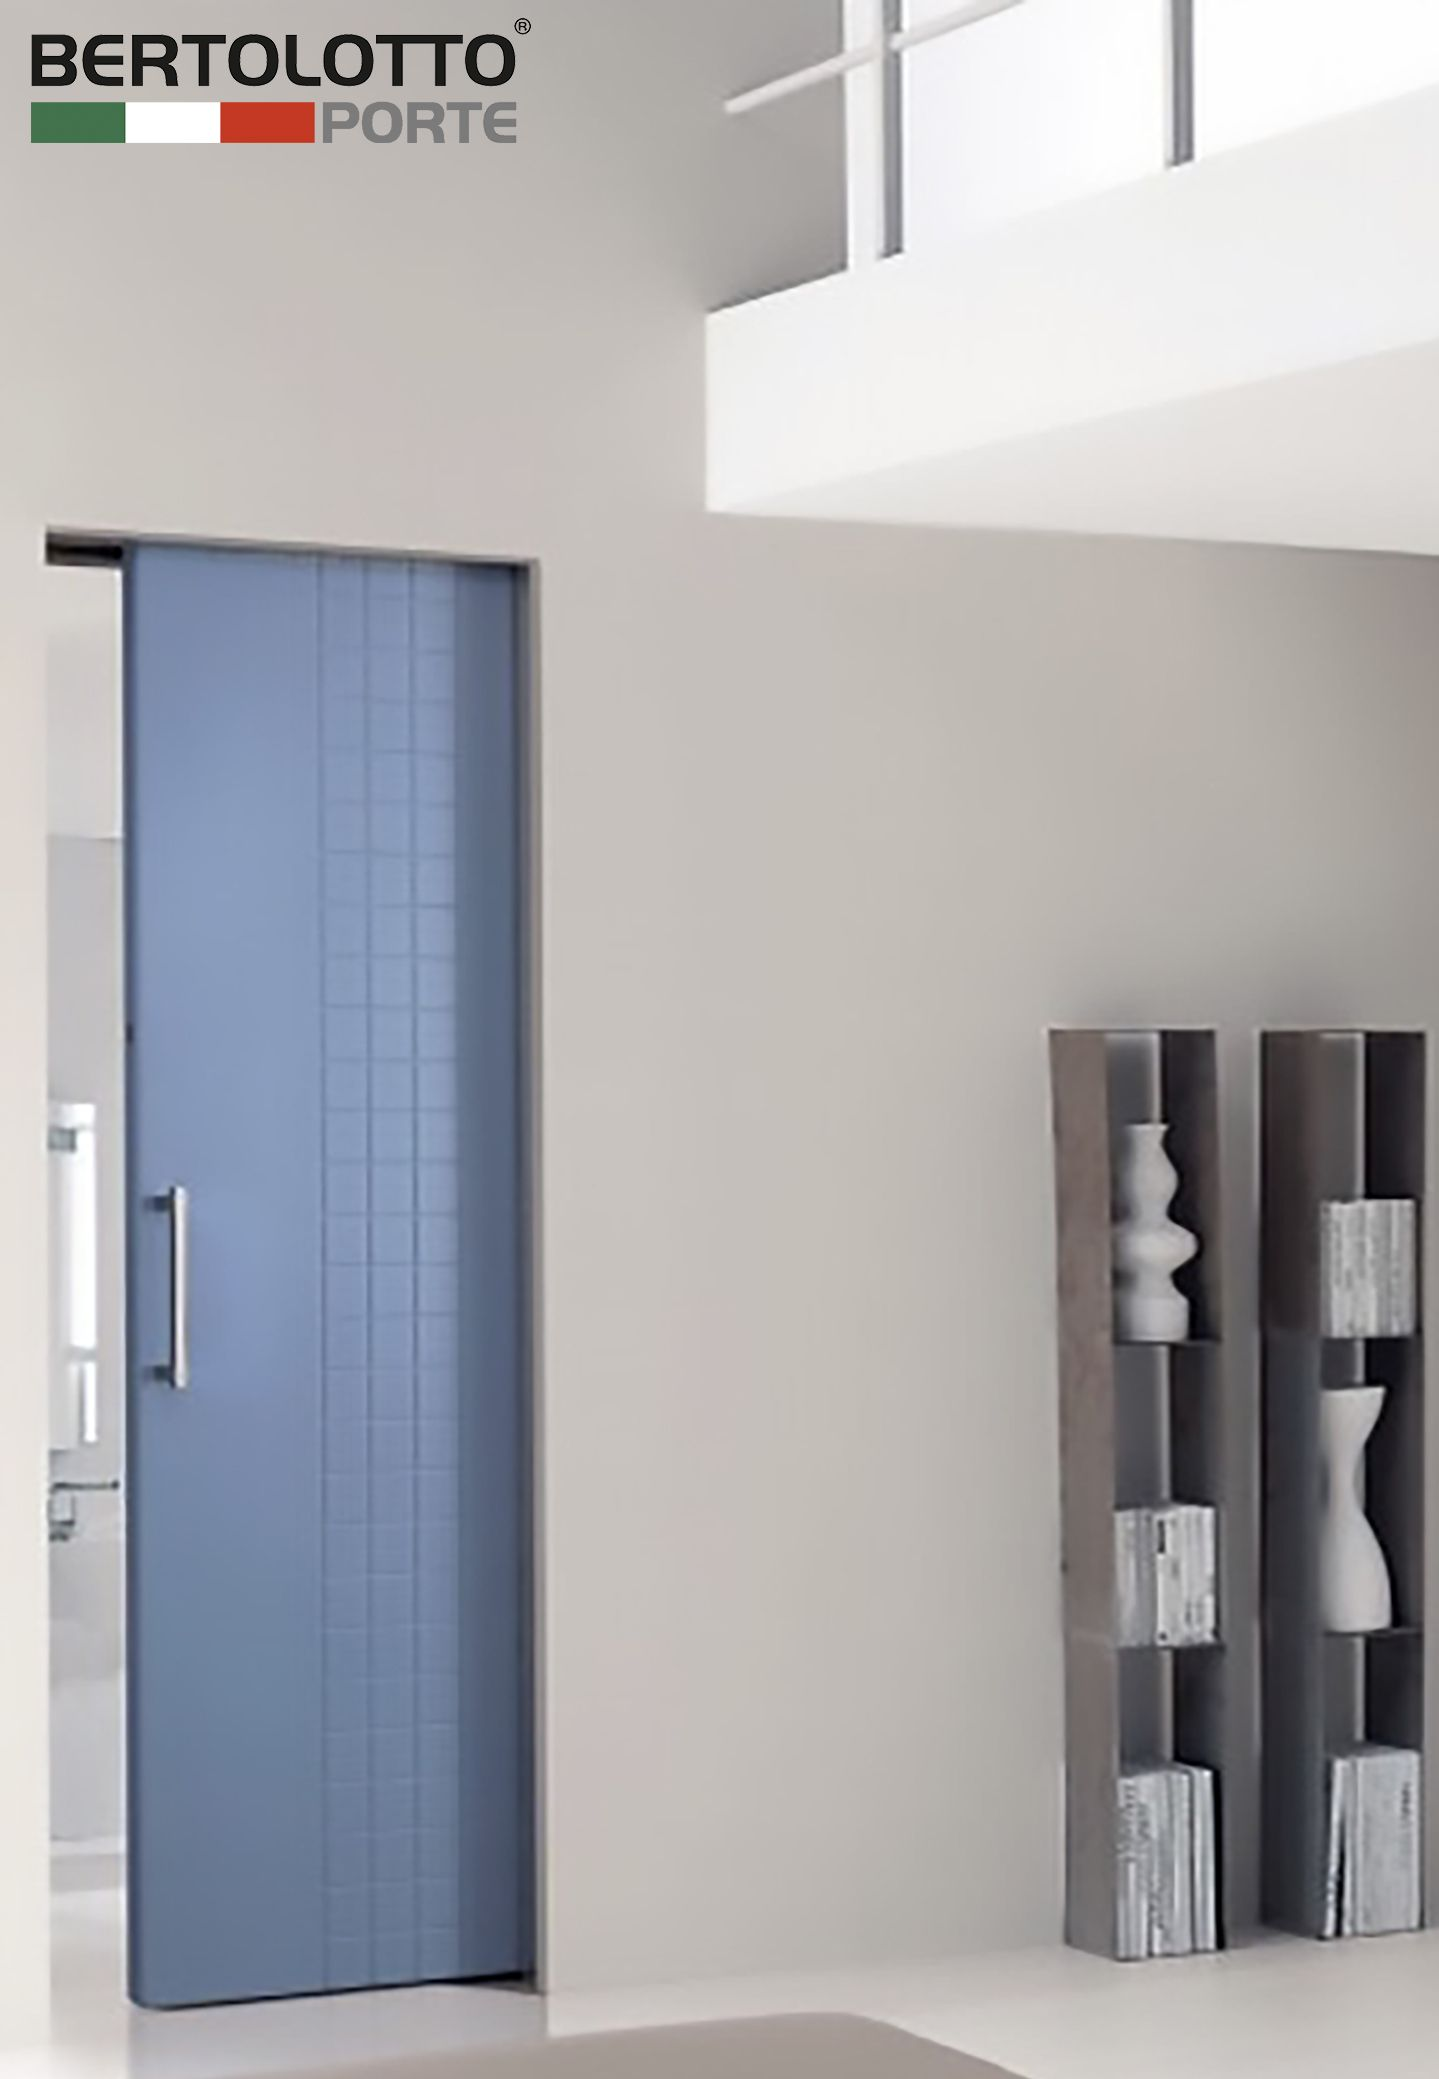 Walldoor Sliding Is A System Of Wall Mounted Bins And Doors Ideal